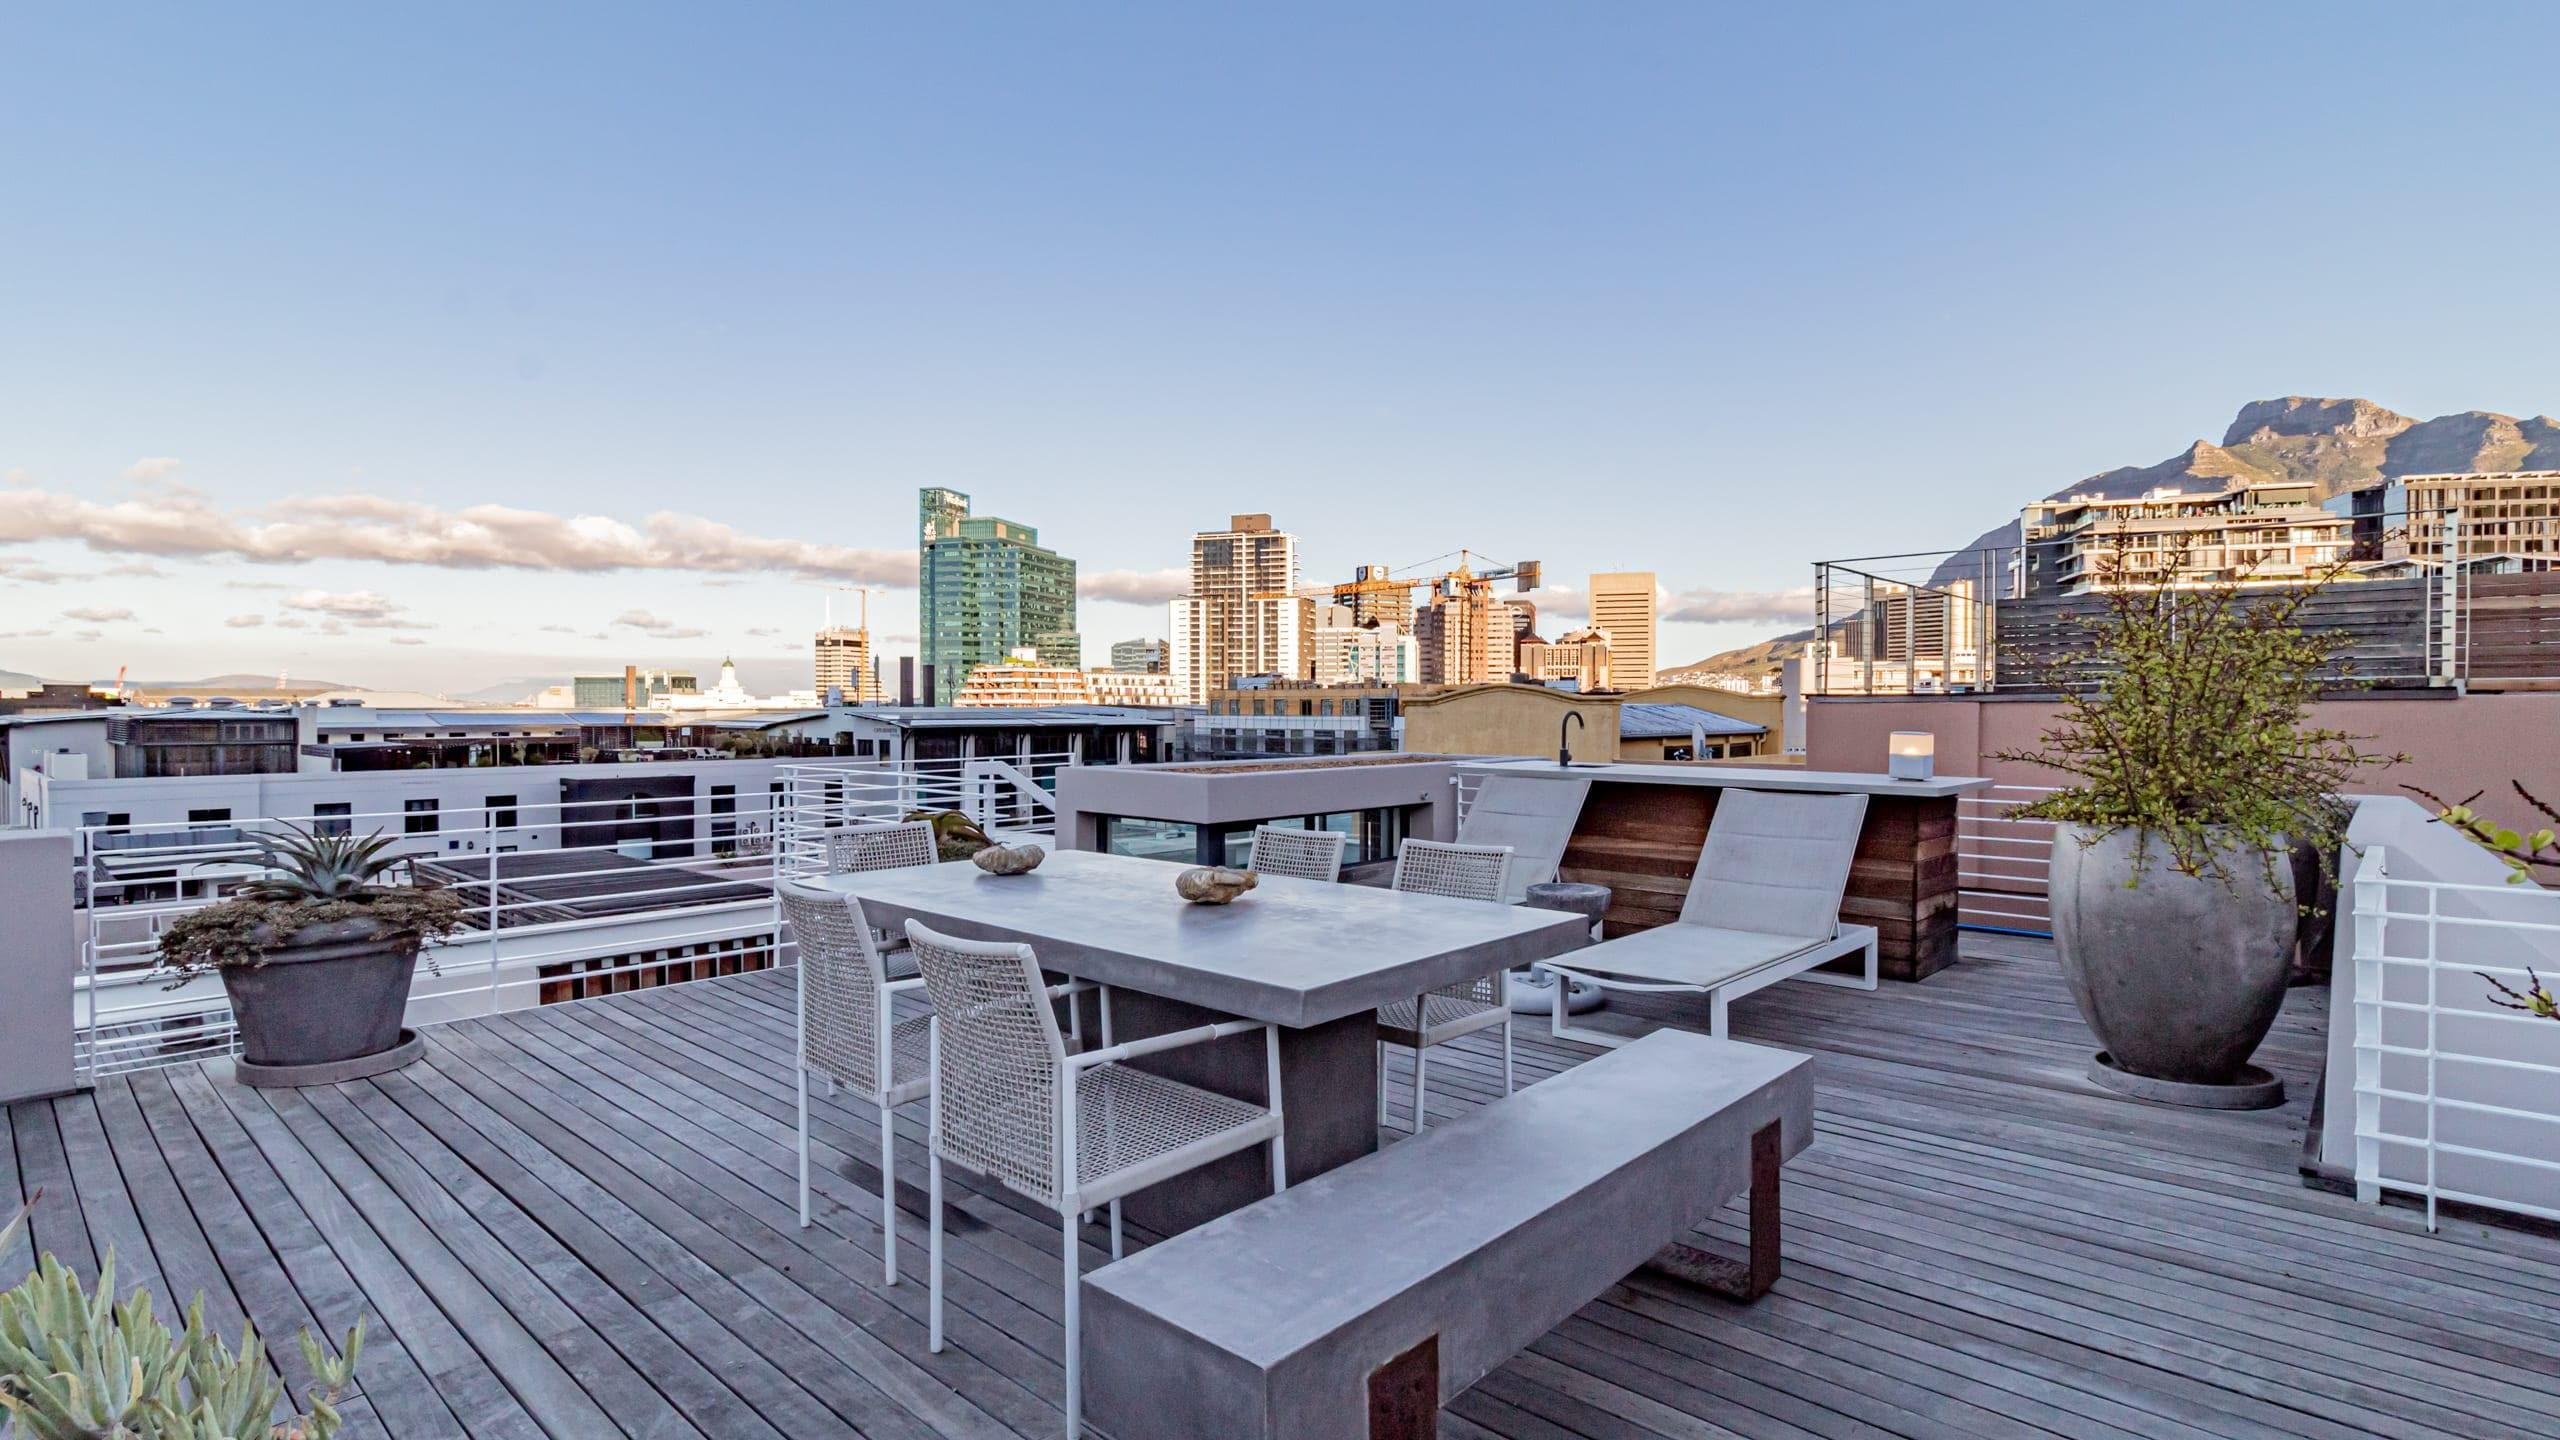 Property Image 2 - Stylishly Decorated Apartment with Rooftop Deck and Gorgeous Views